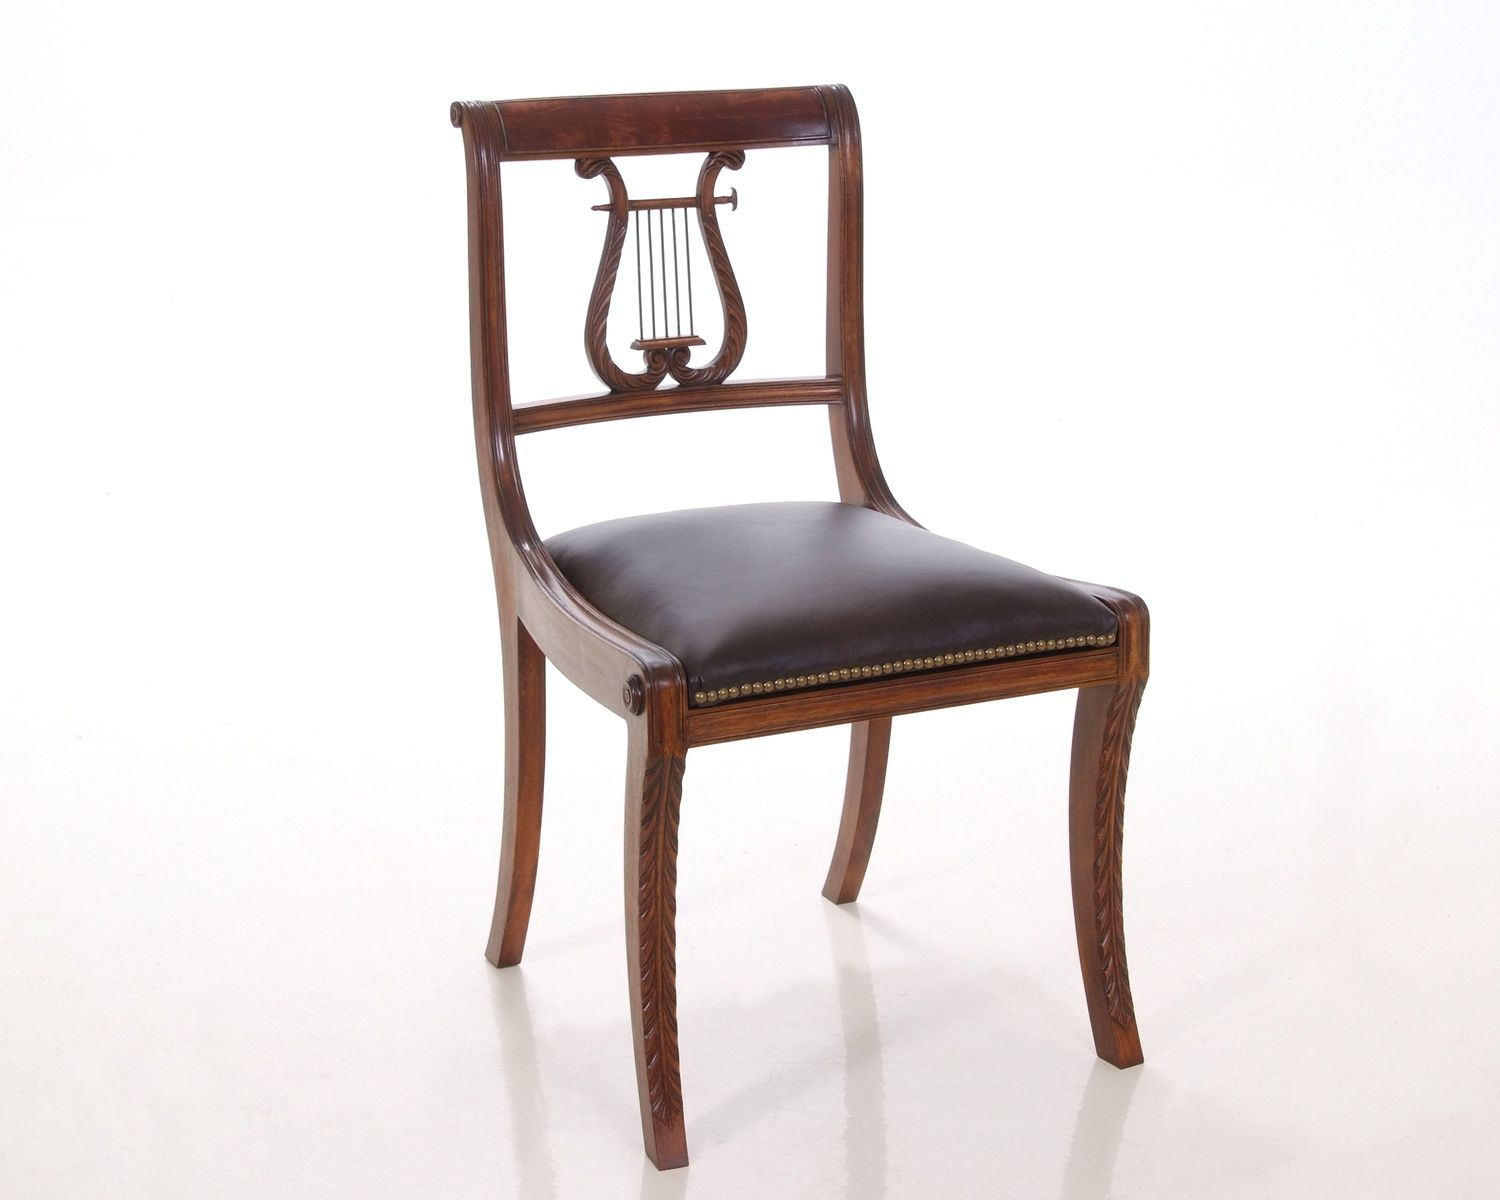 Custom Made Lyre-Back Chair - Hand Made Lyre-Back Chair By Kauffman Fine Furniture CustomMade.com